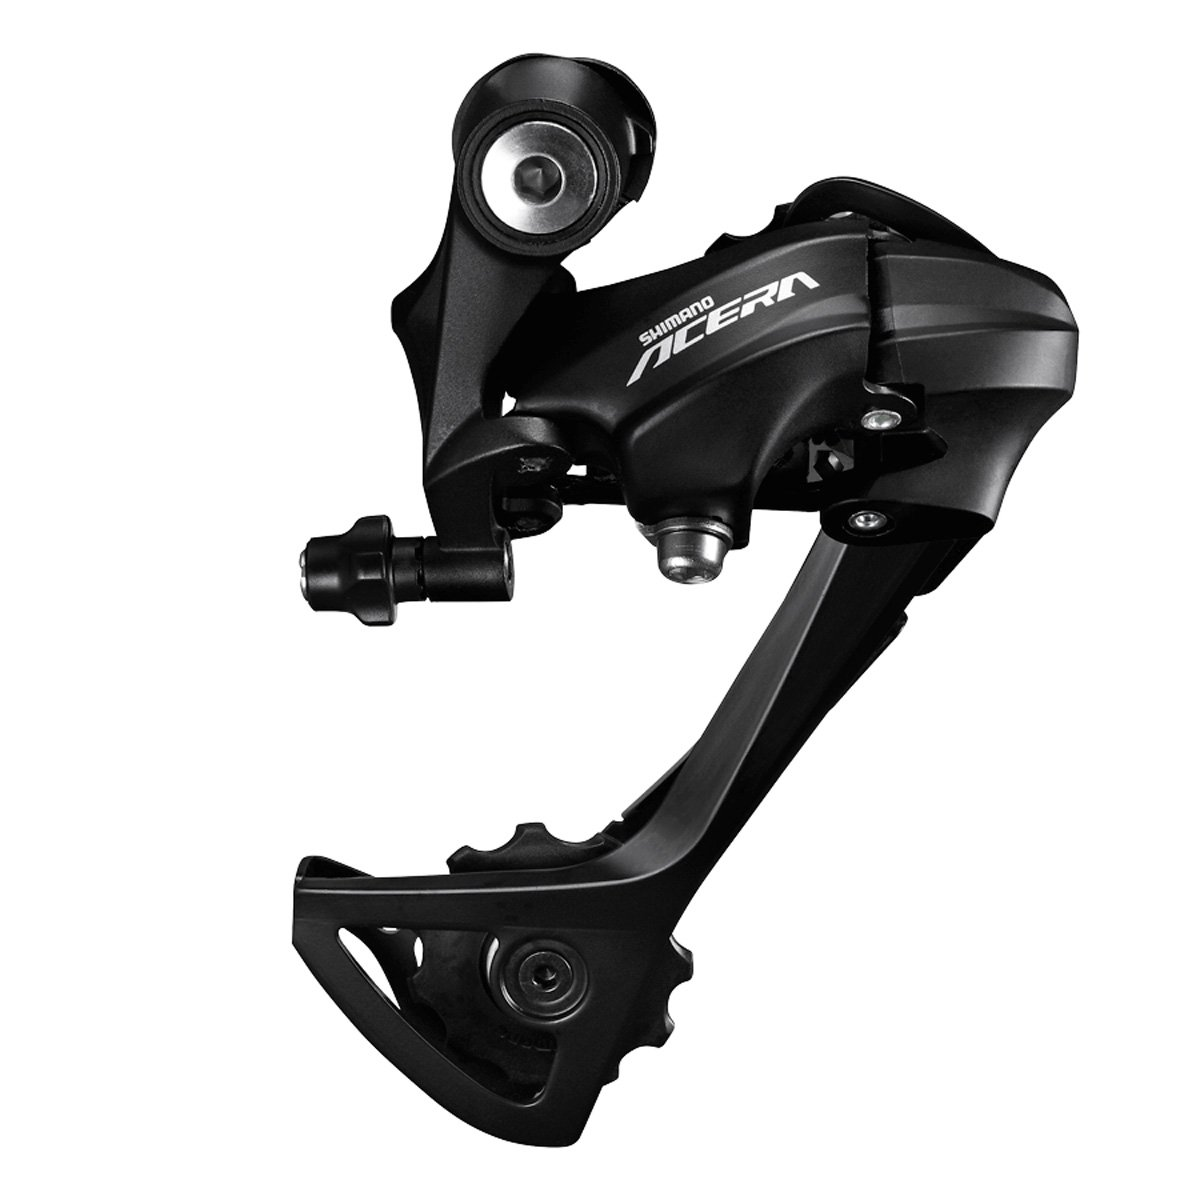 Shimano Acera 9 Speed Mountain Bicycle Rear Derailleur Rd Alivio Shadow M4000 9speed T3000 Black Top Normal Direct Attachment Sports Outdoors